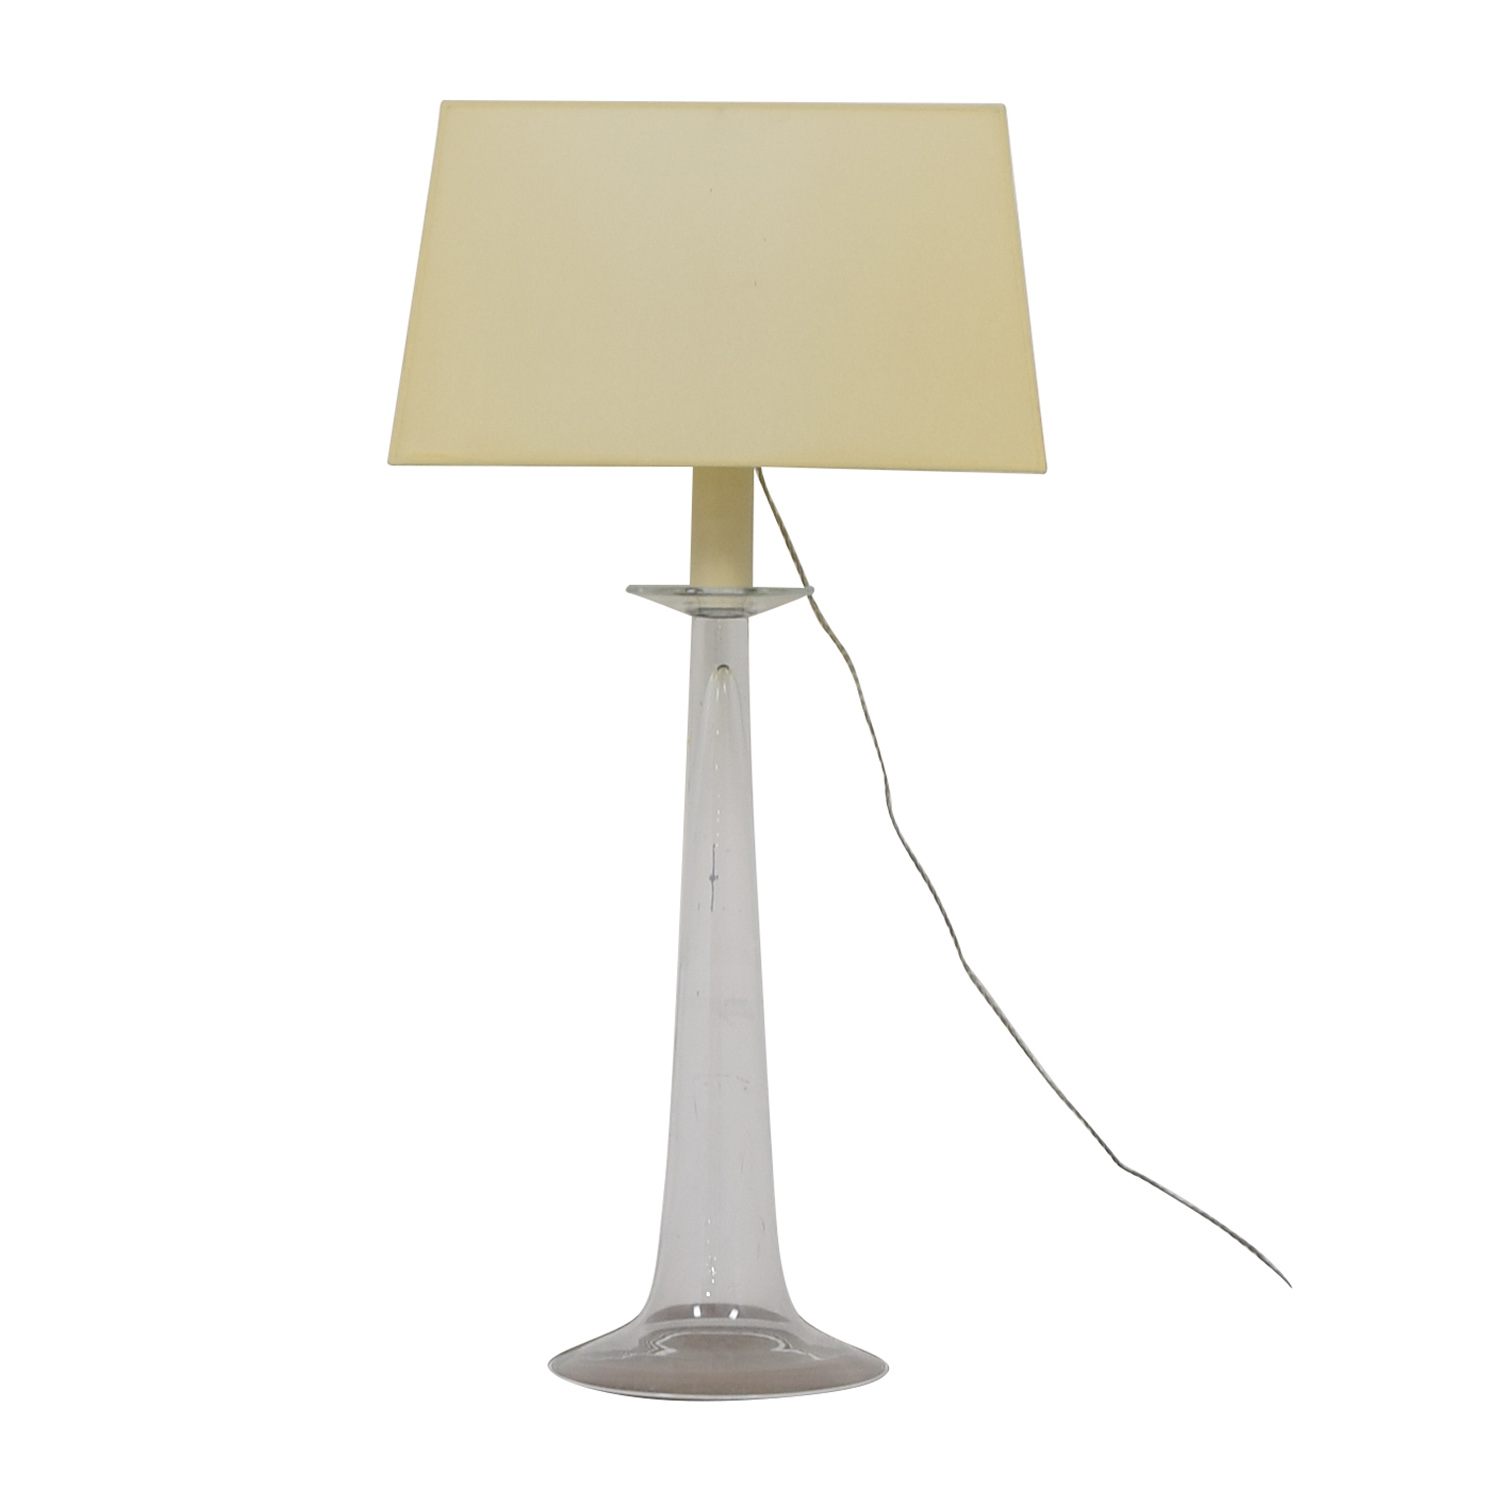 Barbara Cosgrove Barbara Cosgrove High Table Lamp for sale